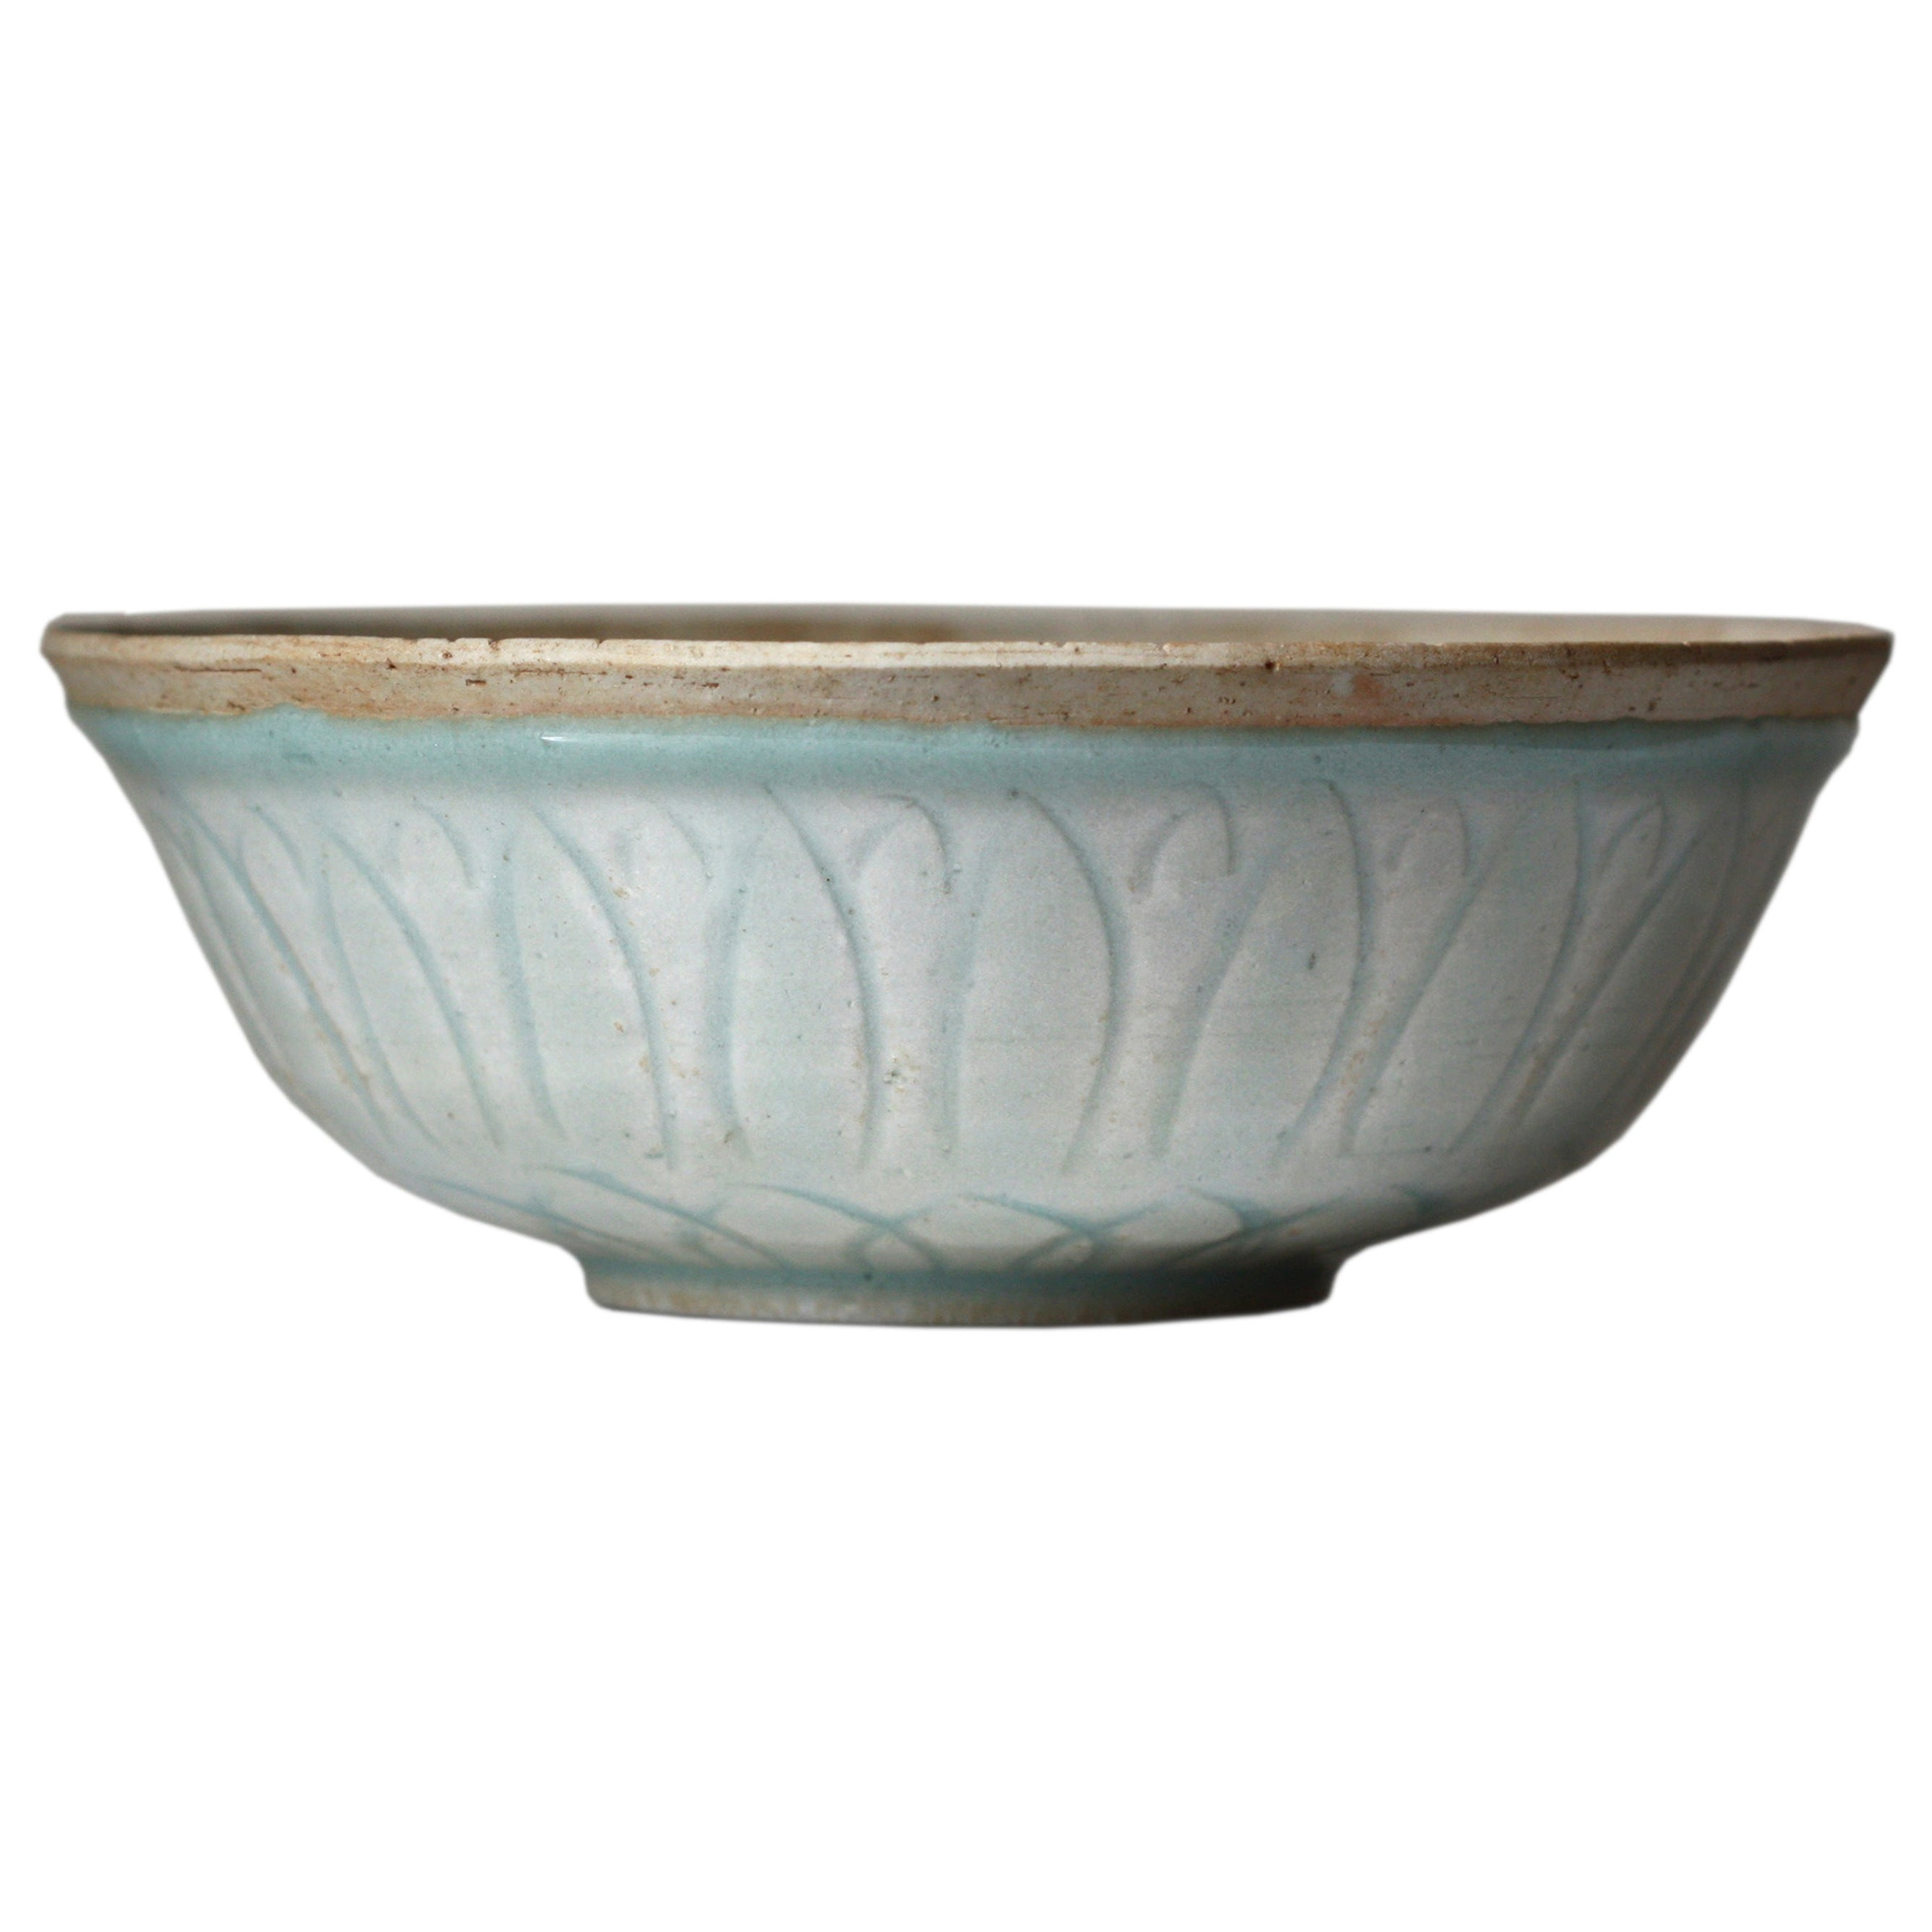 Qinqbai Lobed Conical Bowl, Chinese Probably Song Dynasty